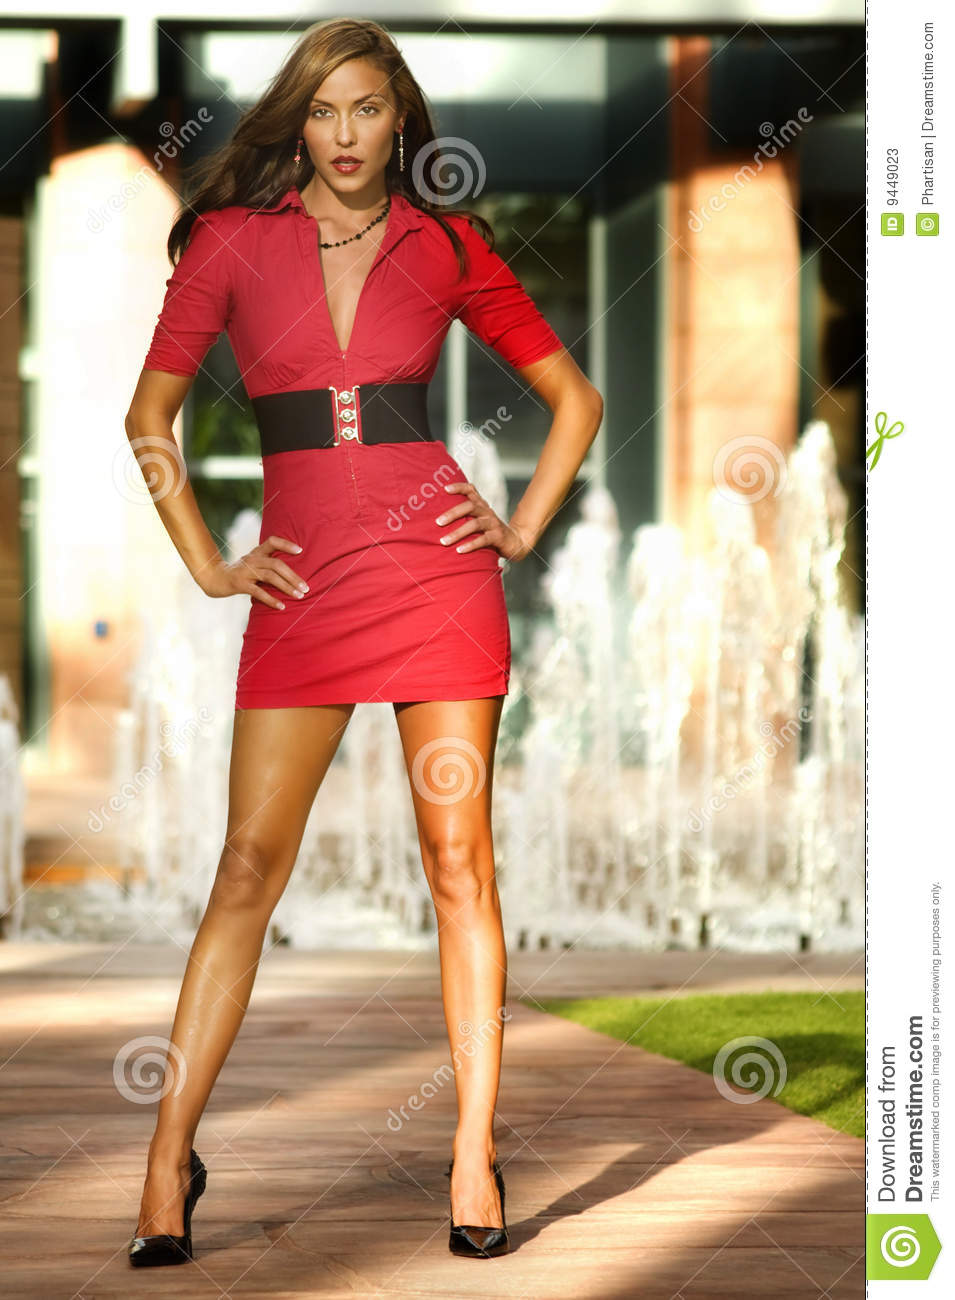 Fashion Model Png Free Download: Fashion Model Wearing Red Dress Stock Image